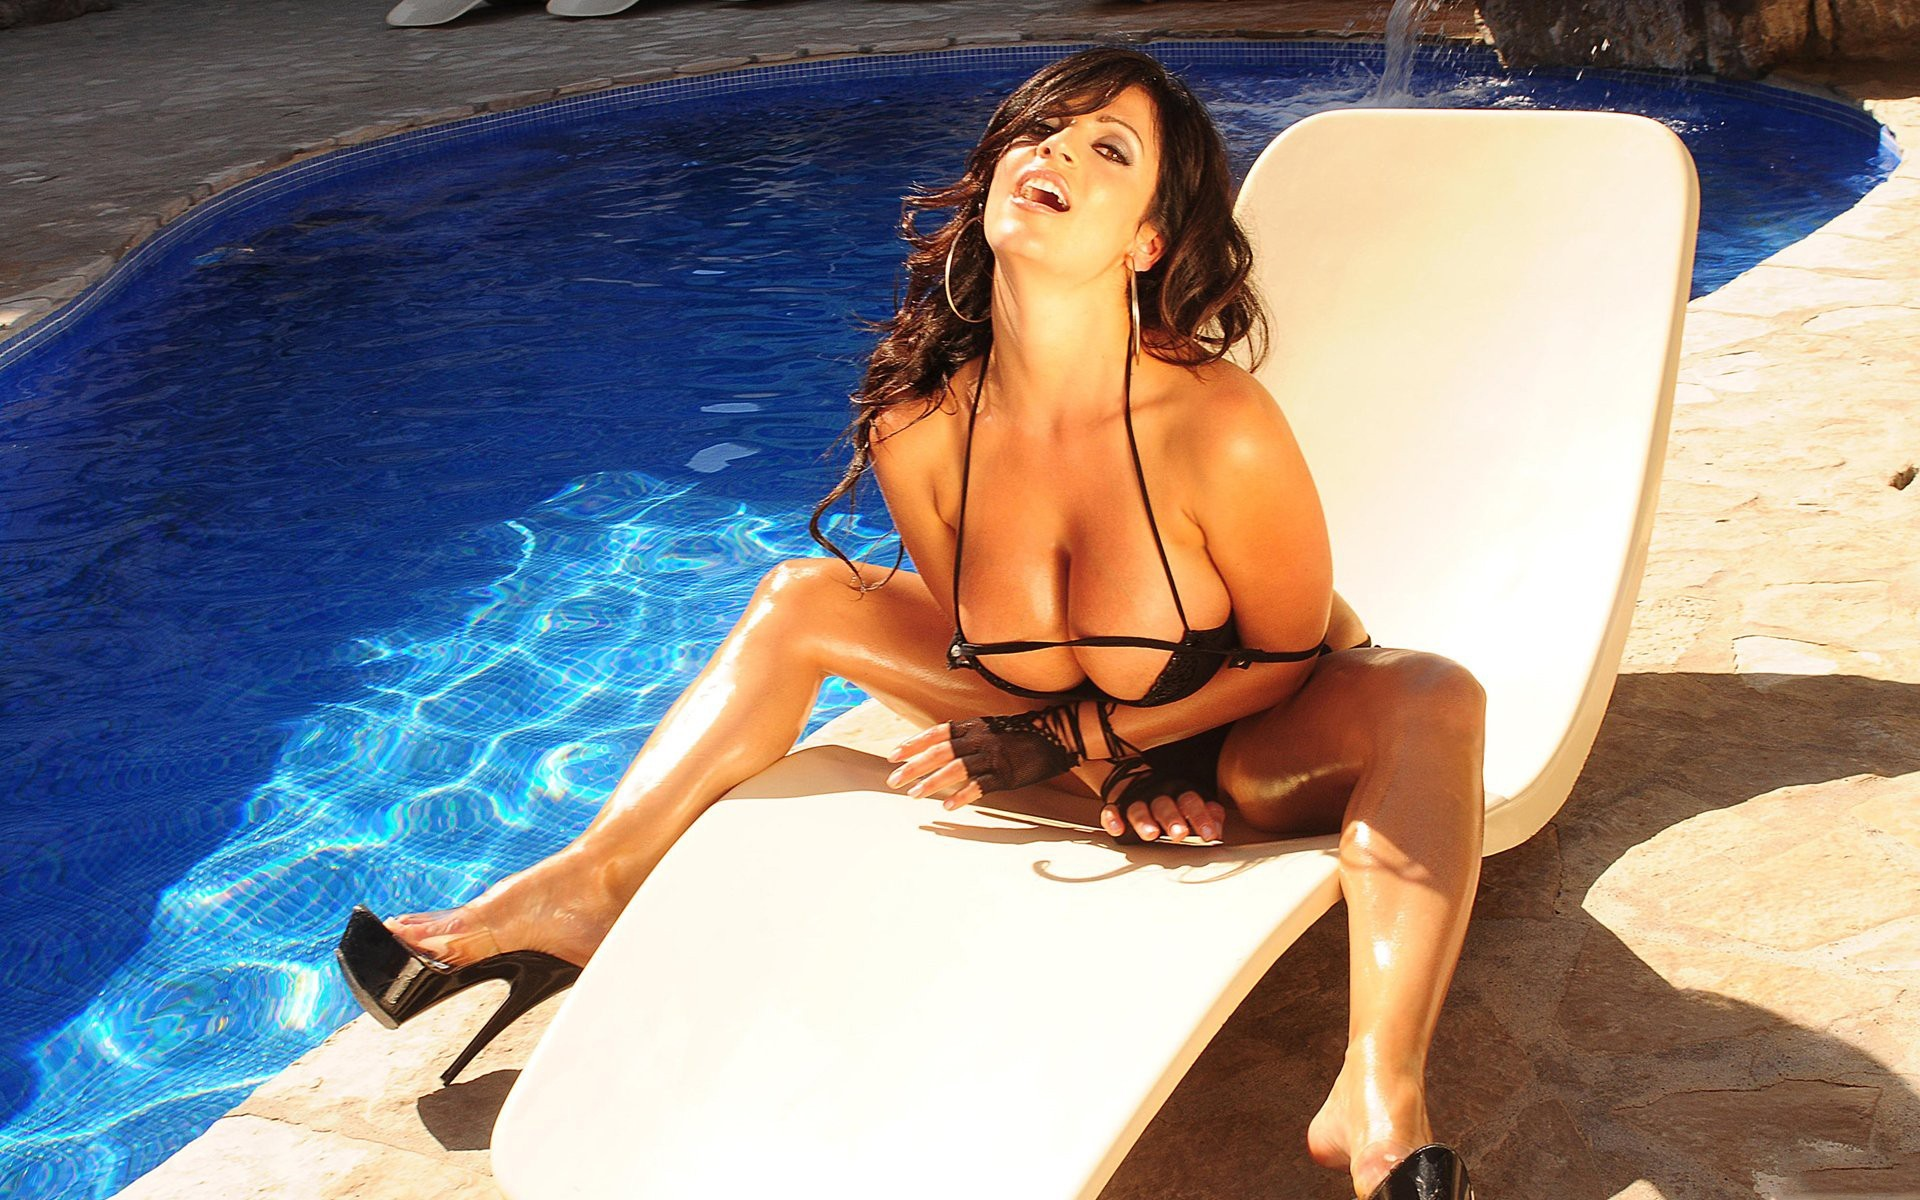 legs oiled women feet denise milani high heels